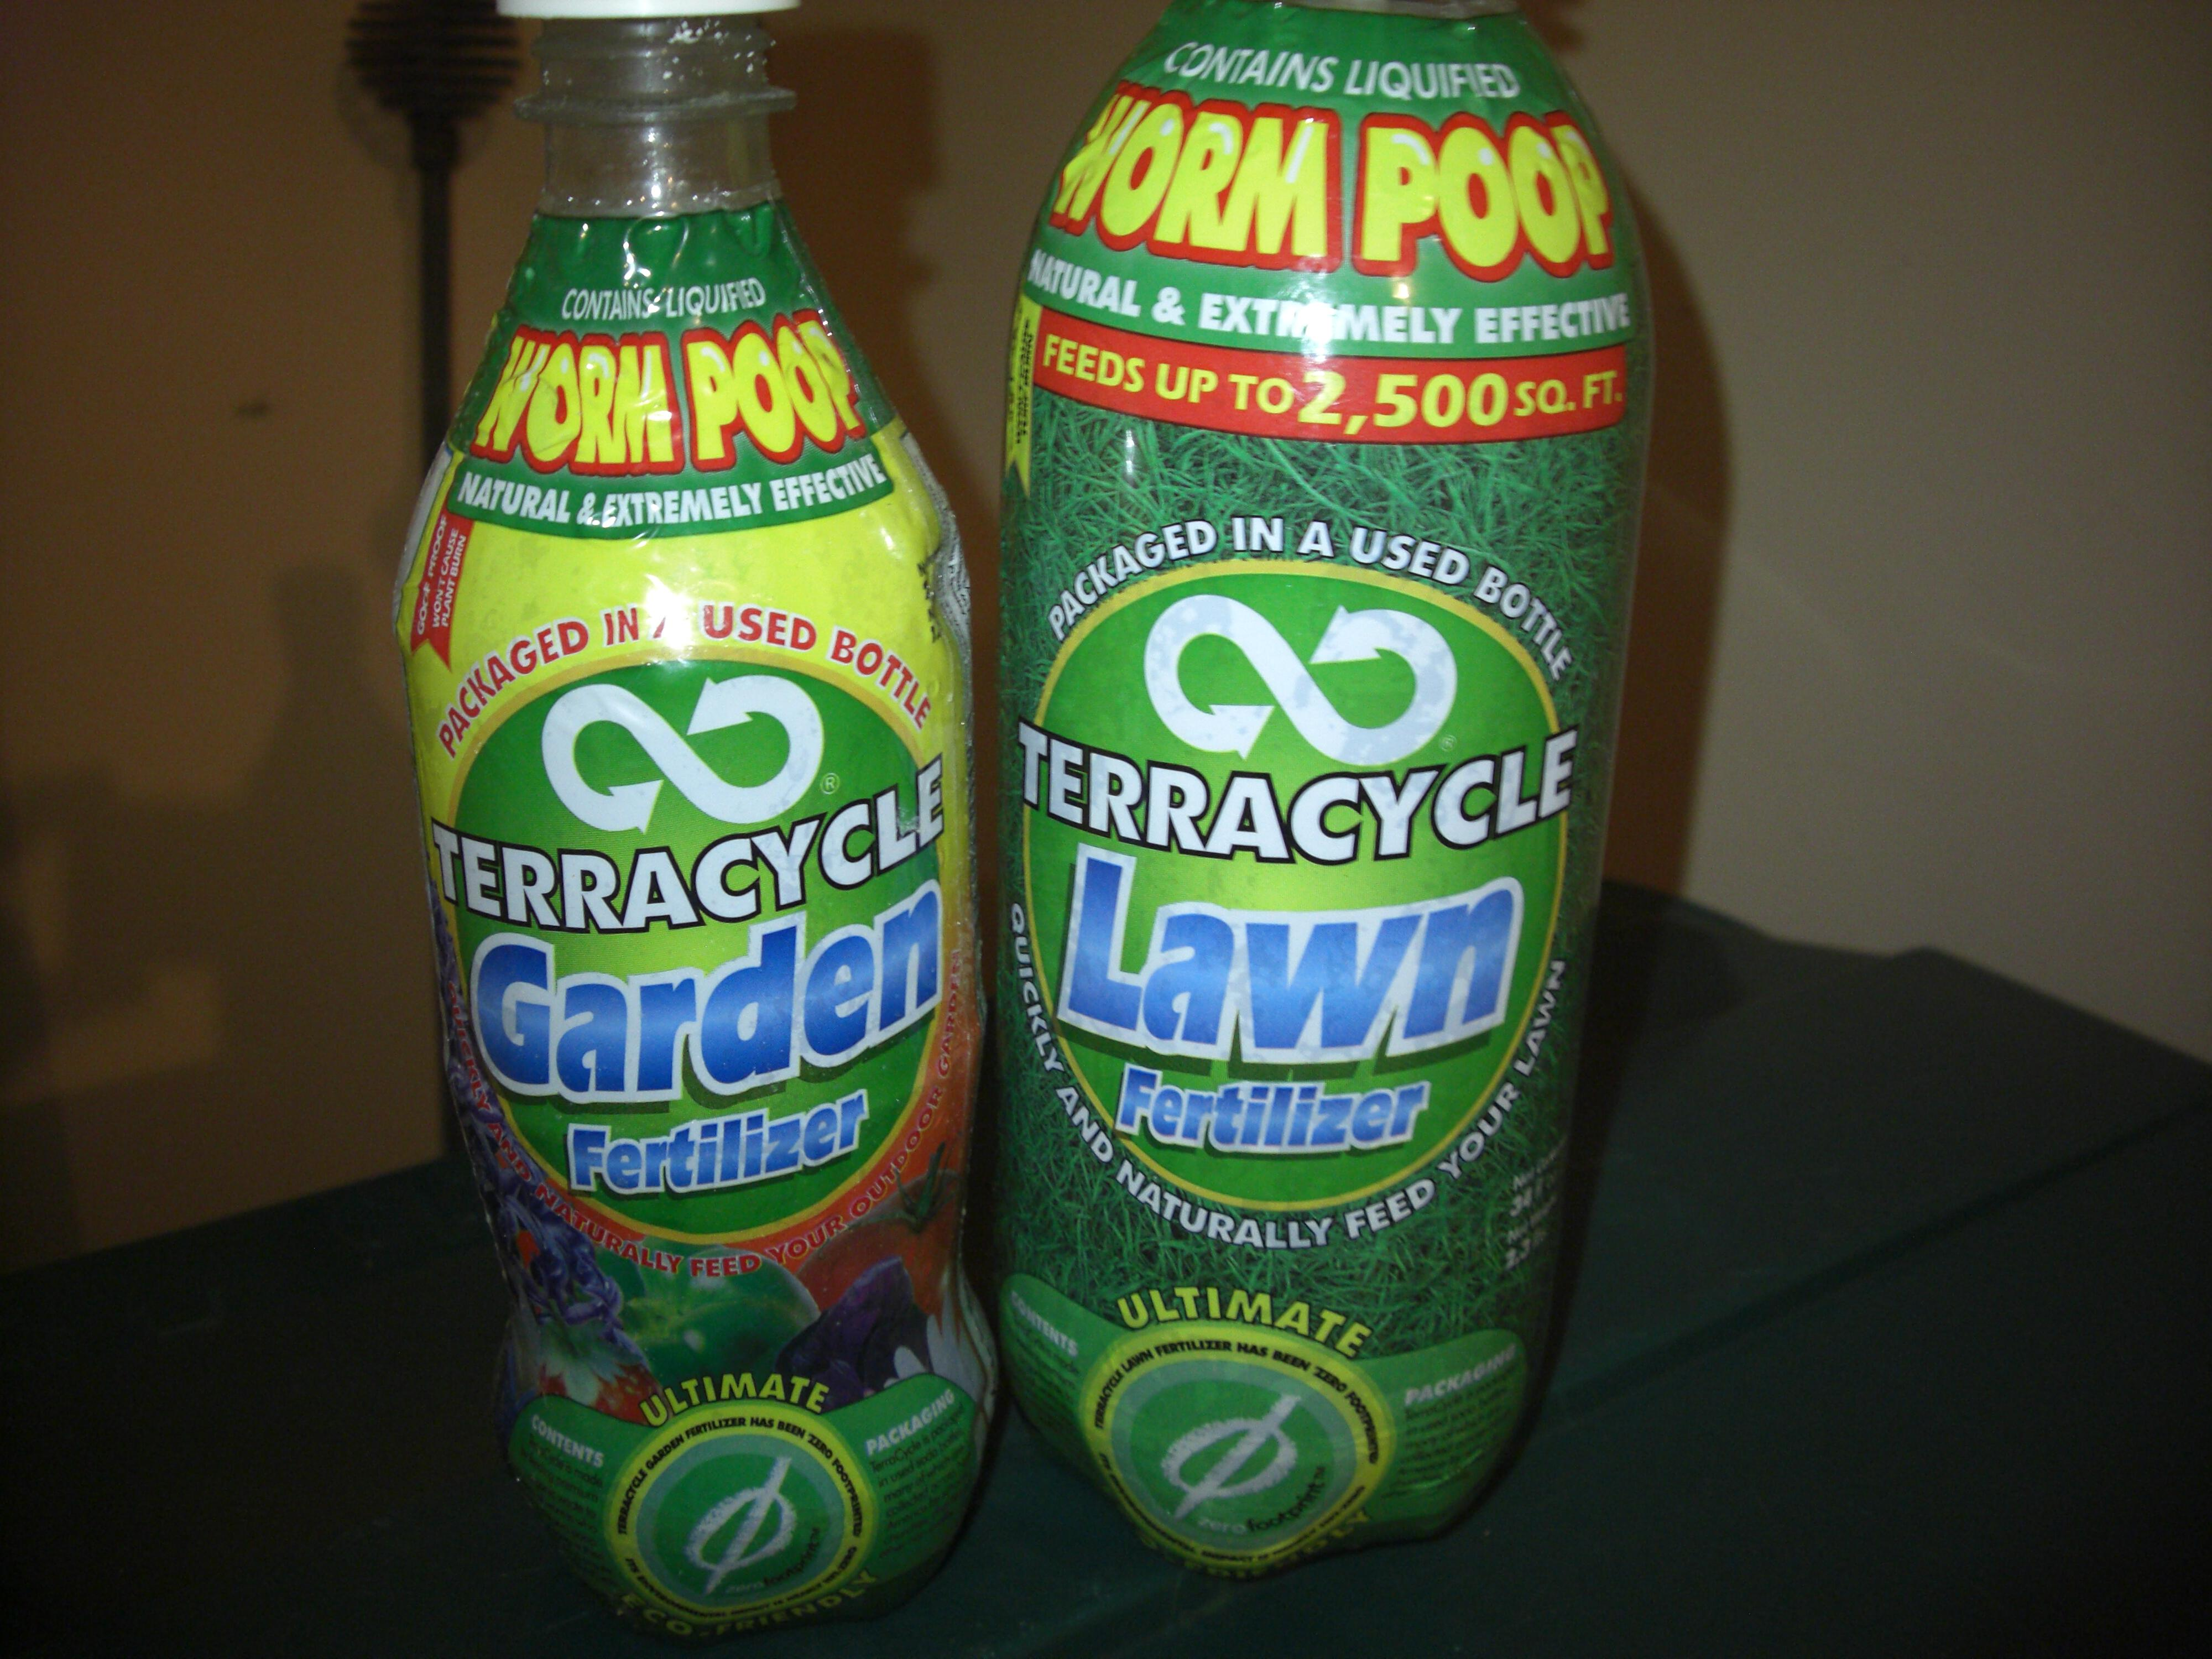 TerraCycle liquid worm poop lawn fertilizer